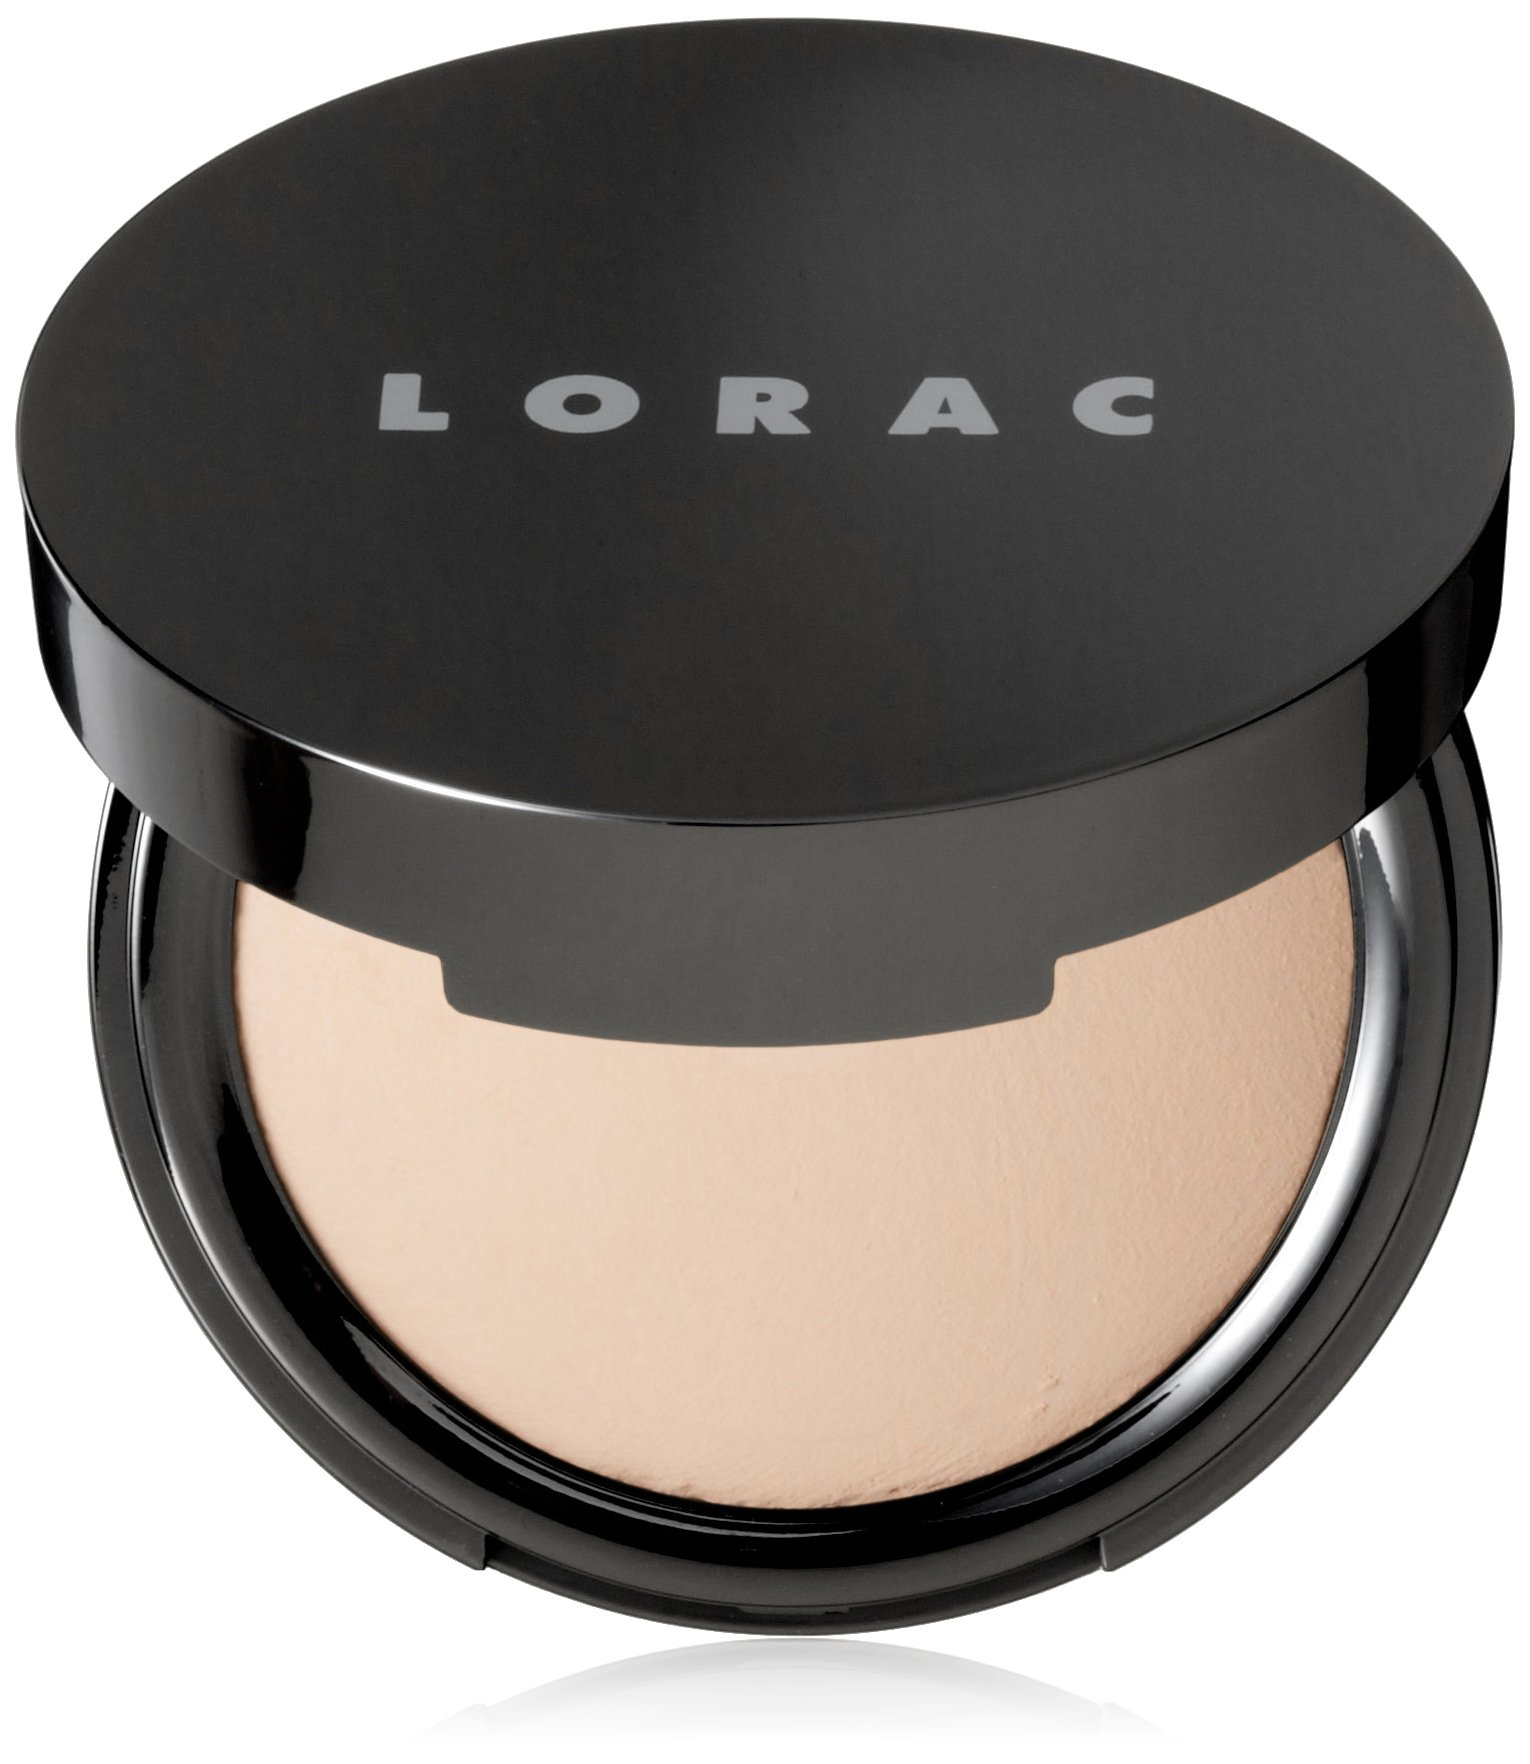 LORAC POREfection Baked Perfecting Powder, PF2 Light by LORAC (Image #1)